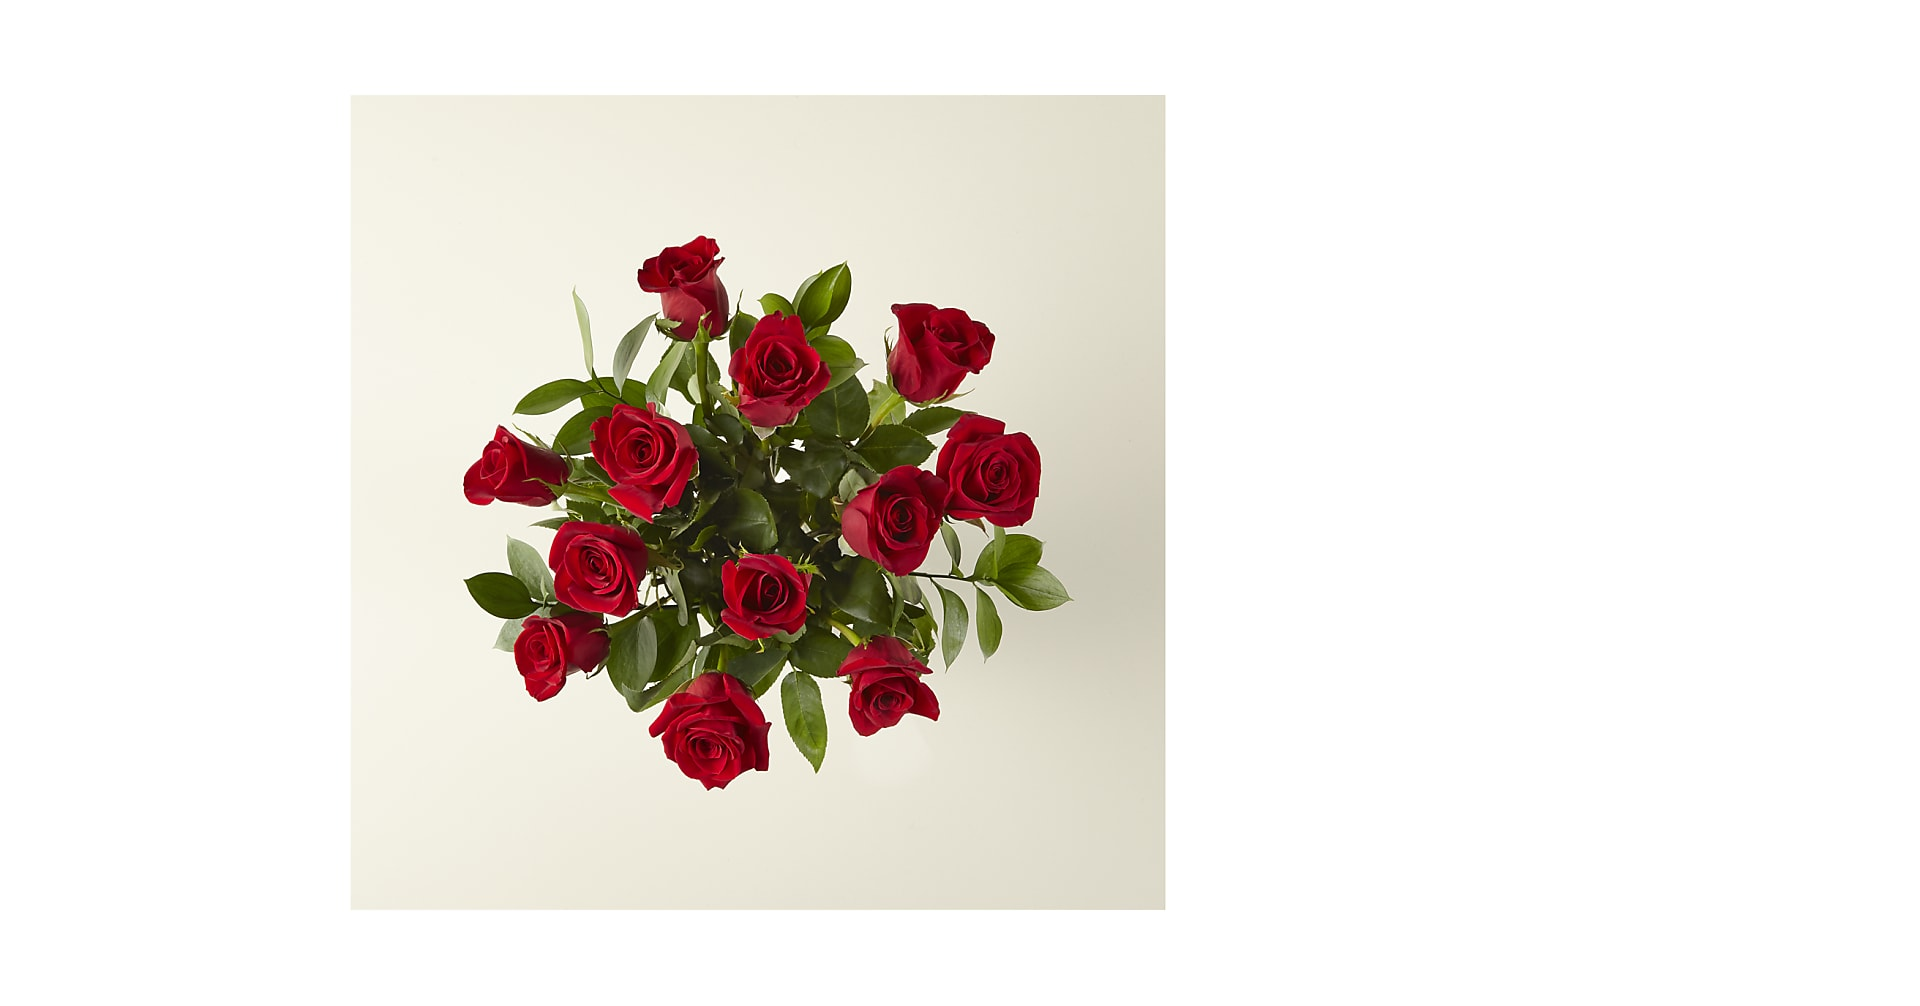 Red Rose Bouquet - Image 3 Of 3